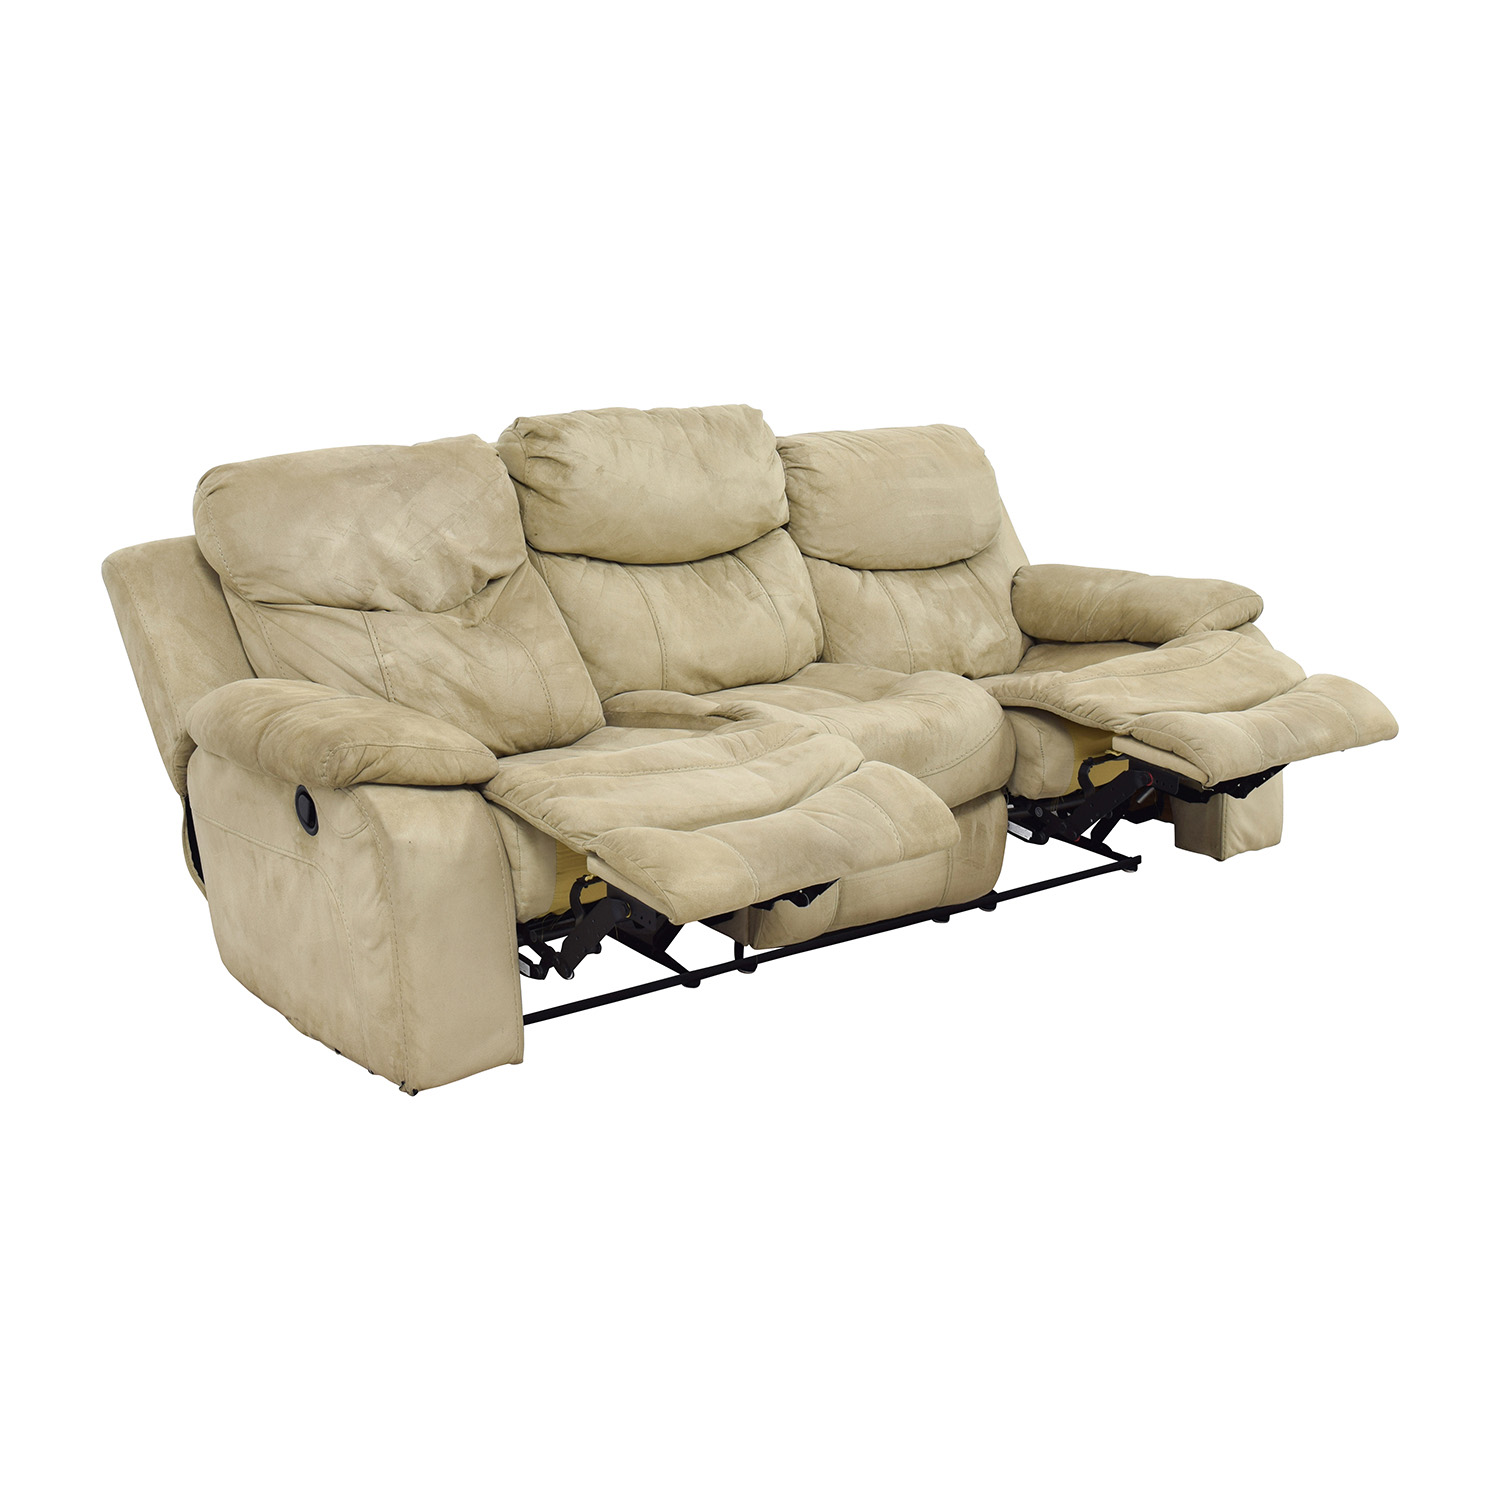 51% OFF Bob s Furniture Bob s Furniture Beige Dual